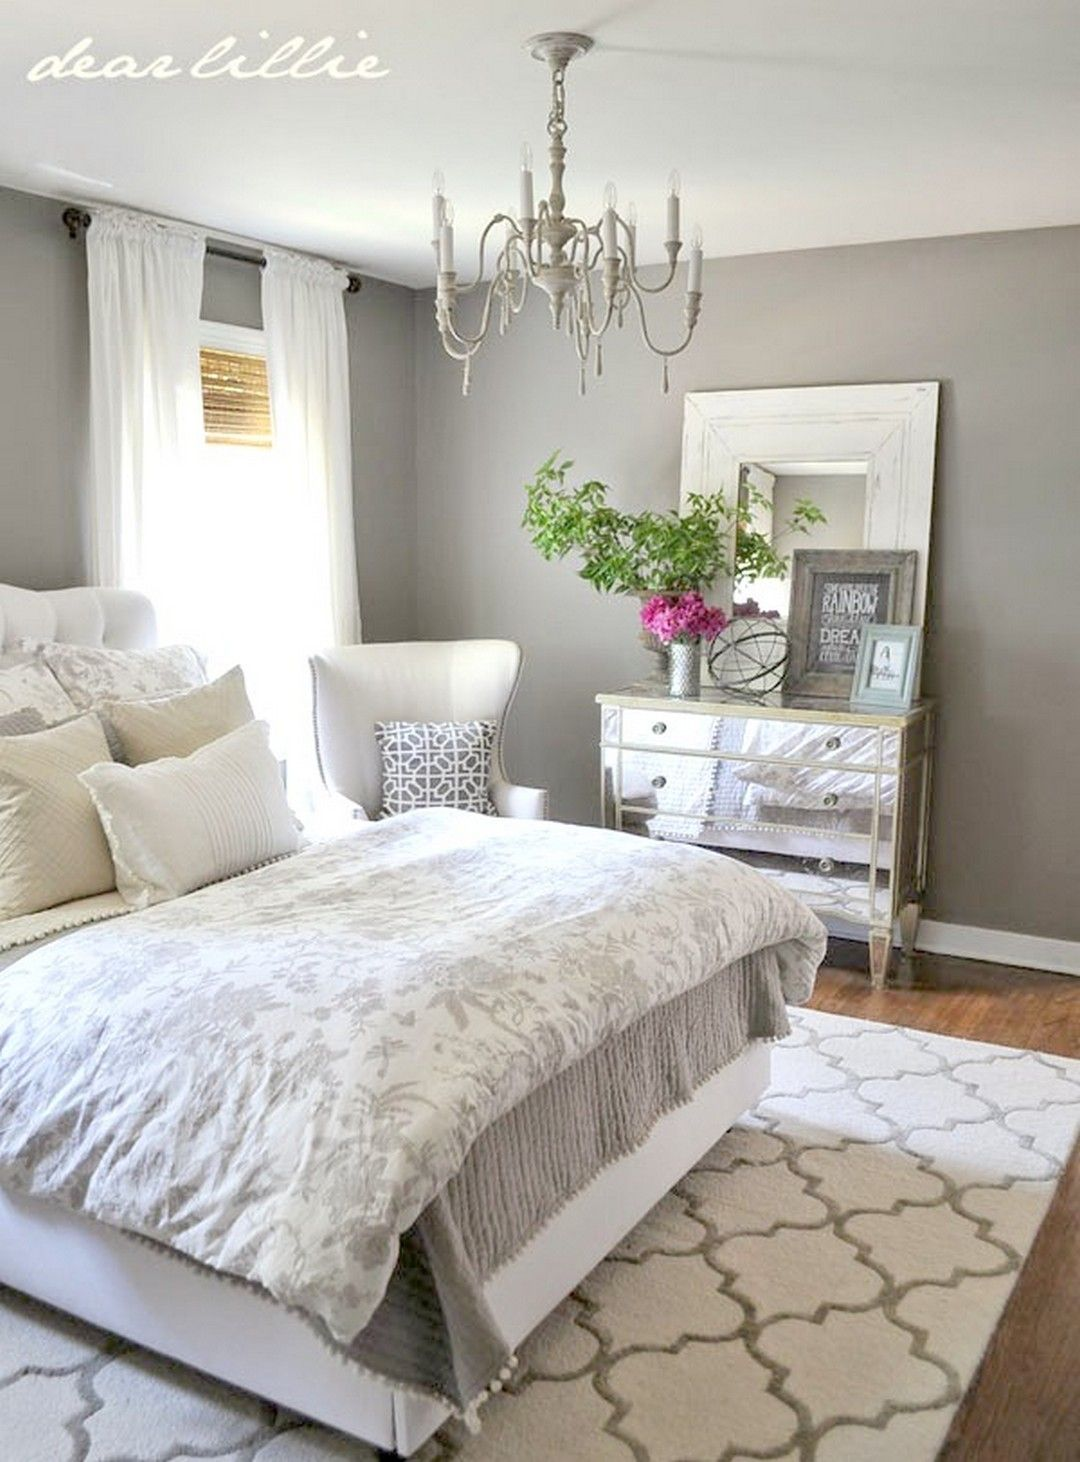 Ingenious bedroom decor ideas 99 beautiful decorating ideas for the master bedroom www.99architectur.  LJKXOUR